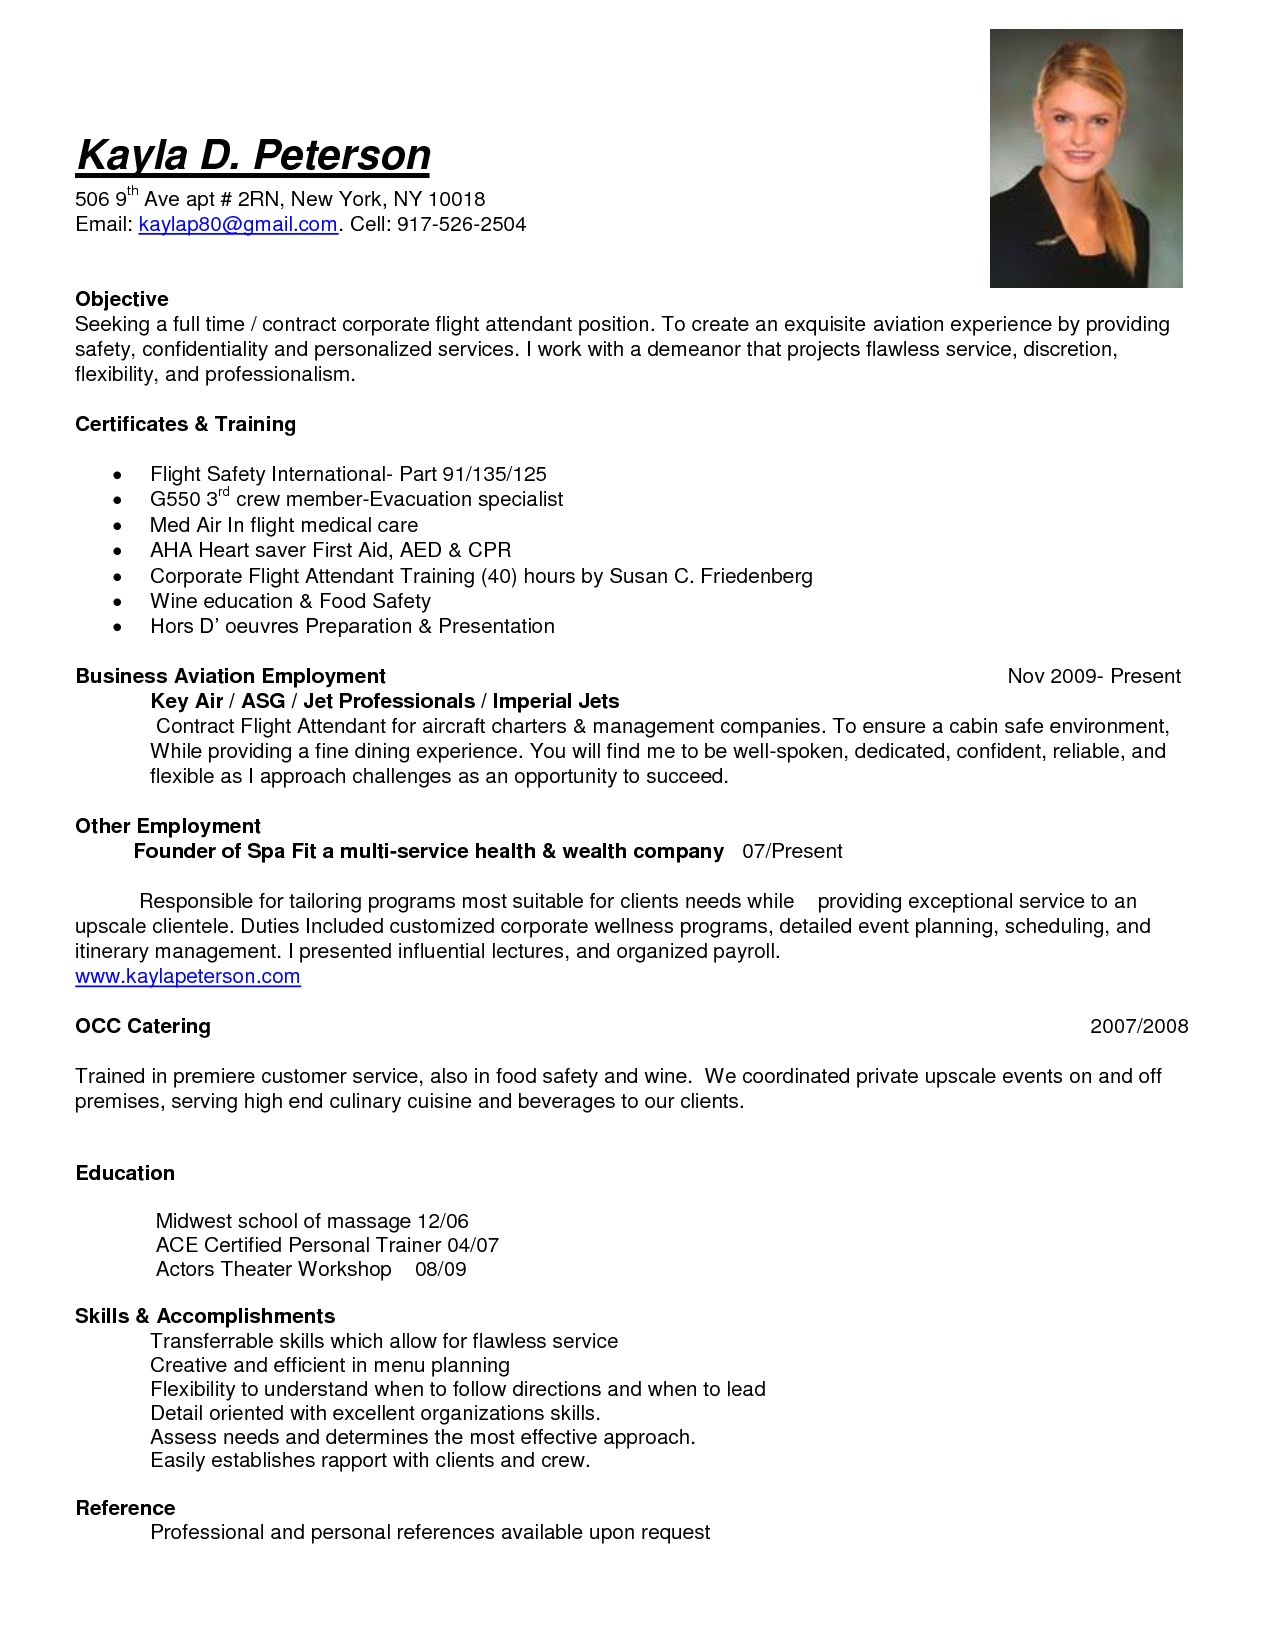 sample objective full time corporate flight attendant job position resume include list certification and t